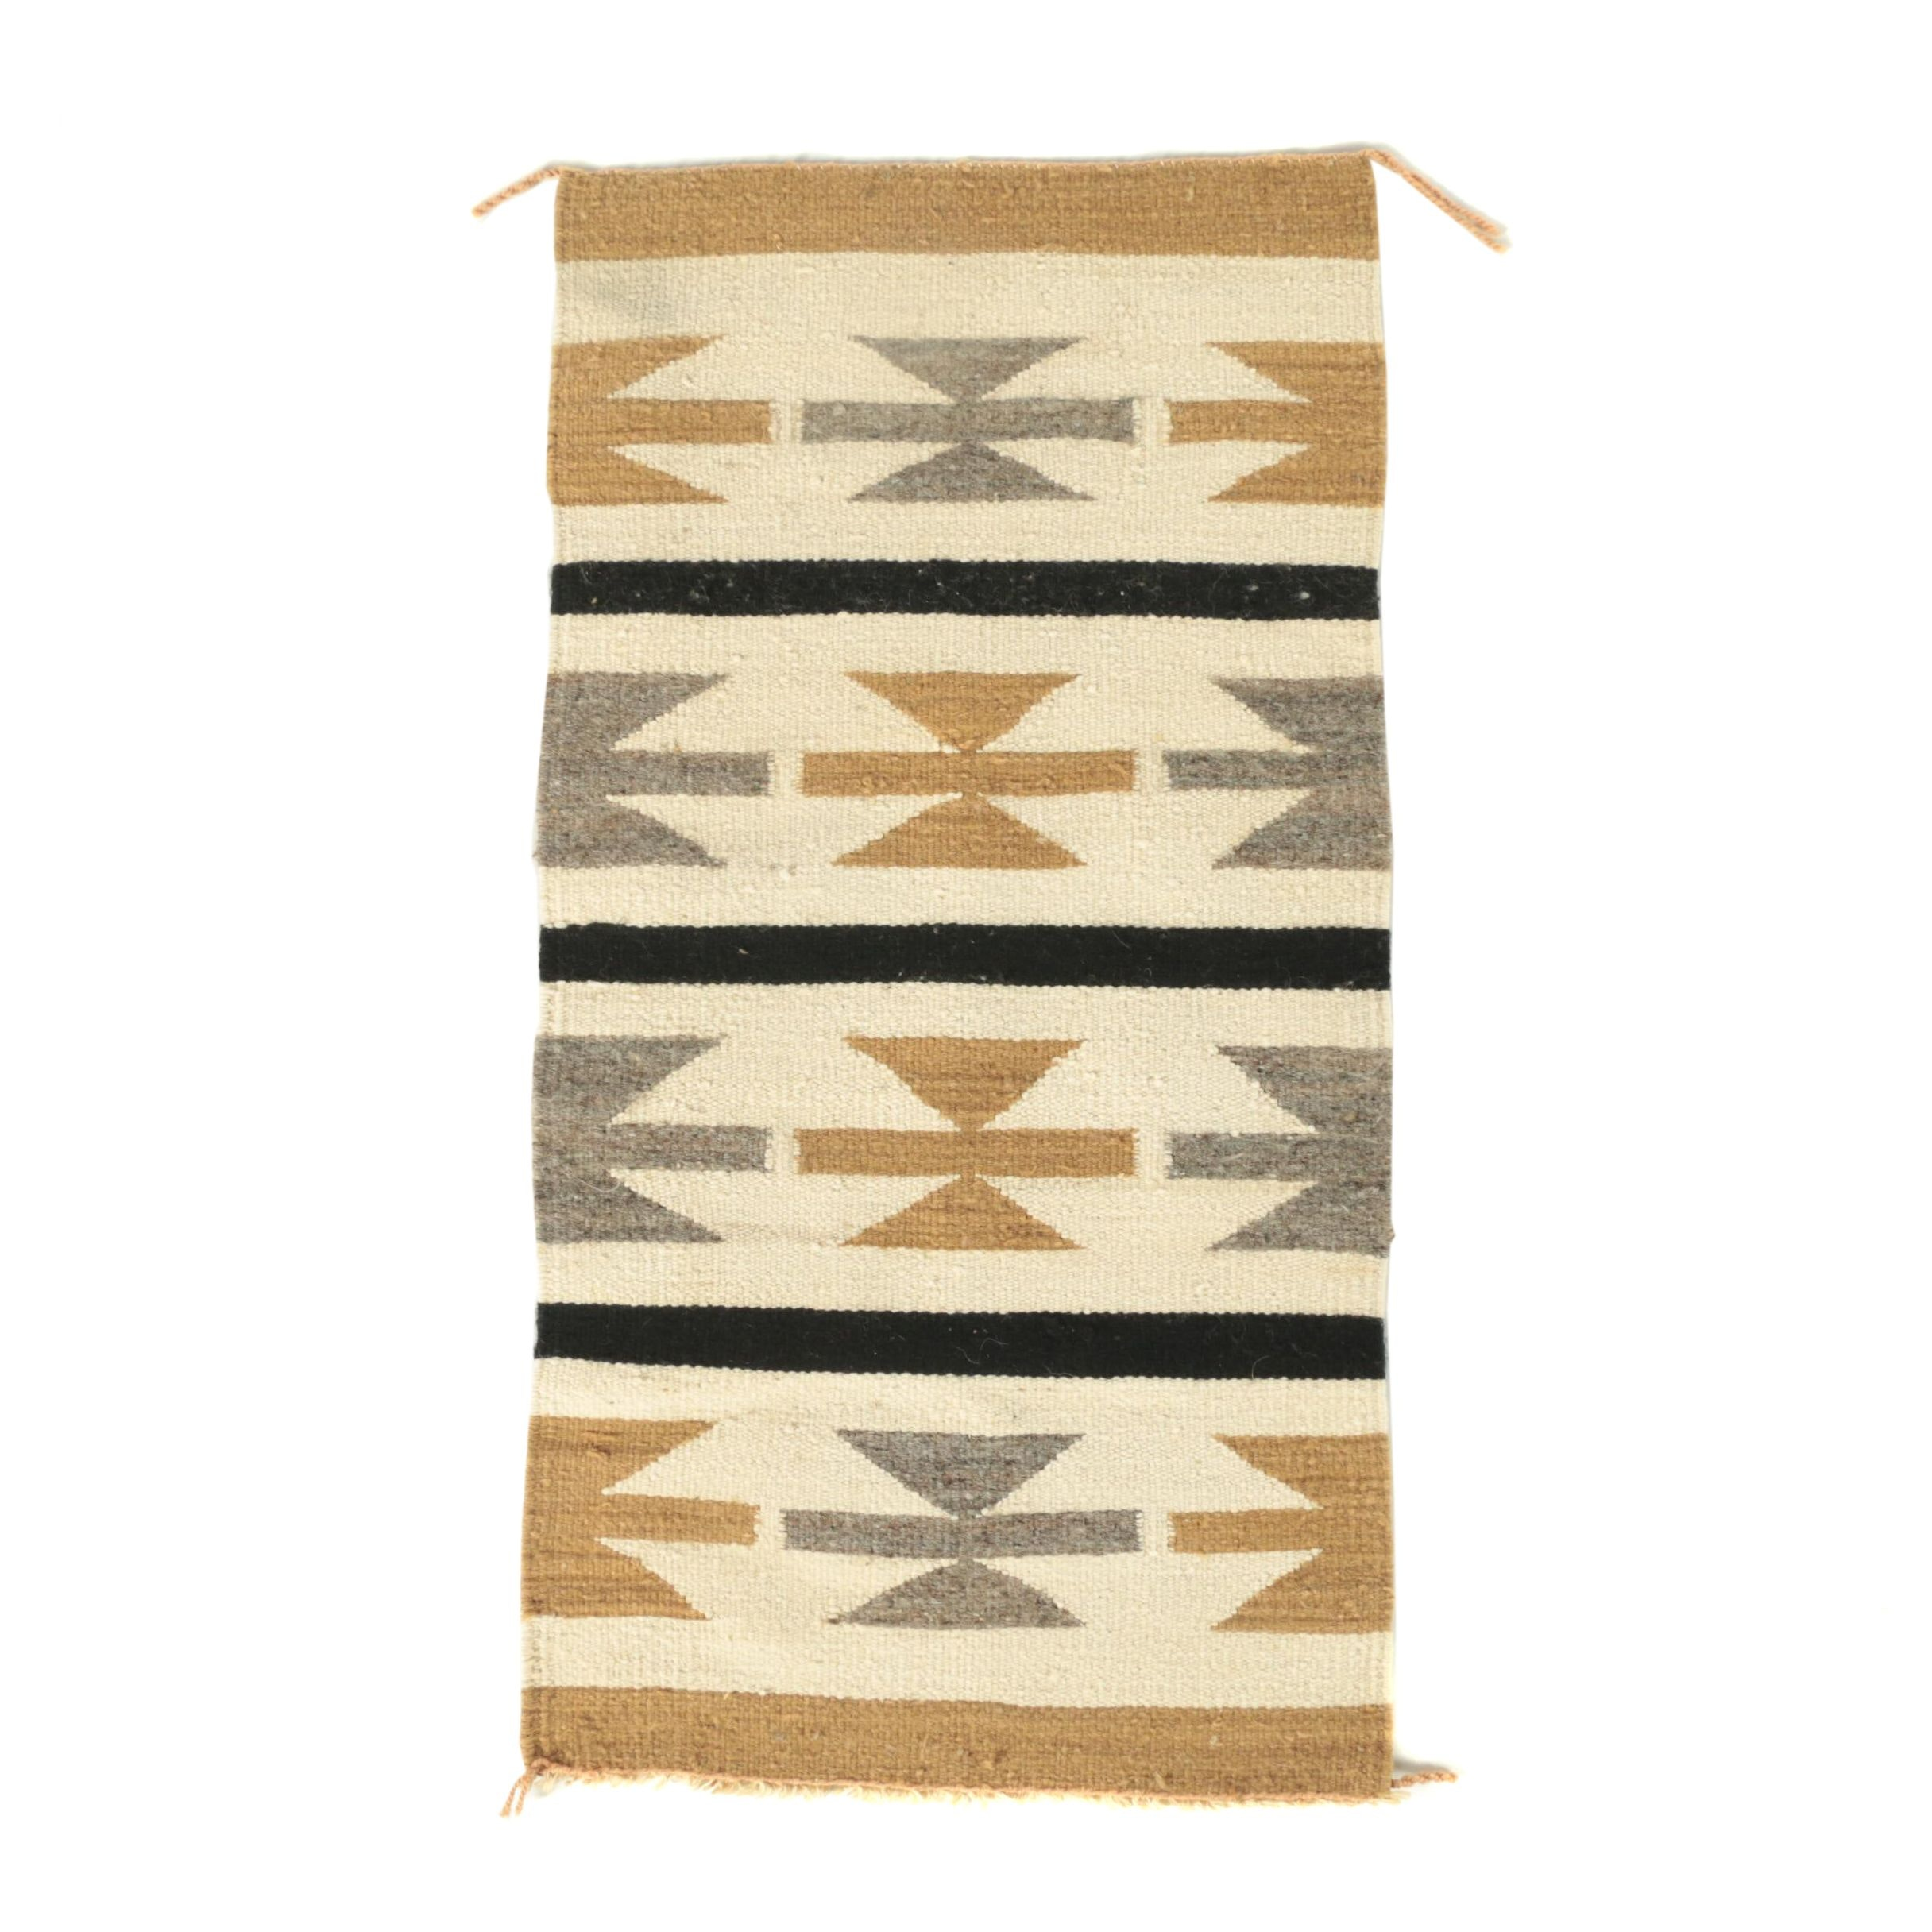 Handwoven Navajo Style Wool Accent Rug